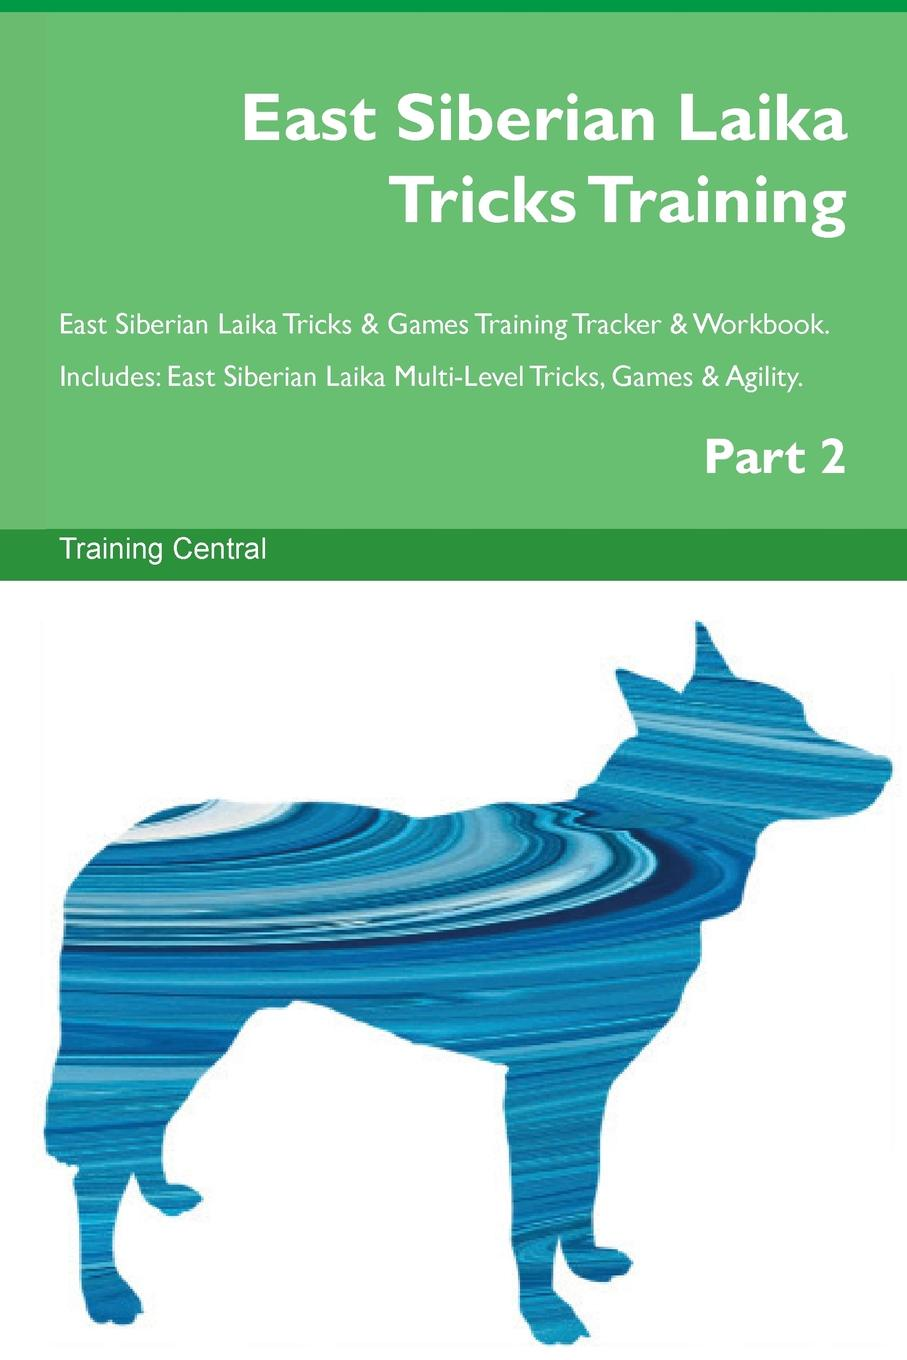 Training Central East Siberian Laika Tricks Training East Siberian Laika Tricks & Games Training Tracker & Workbook. Includes. East Siberian Laika Multi-Level Tricks, Games & Agility. Part 2 training central west siberian laika tricks training west siberian laika tricks games training tracker workbook includes west siberian laika multi level tricks games agility part 2